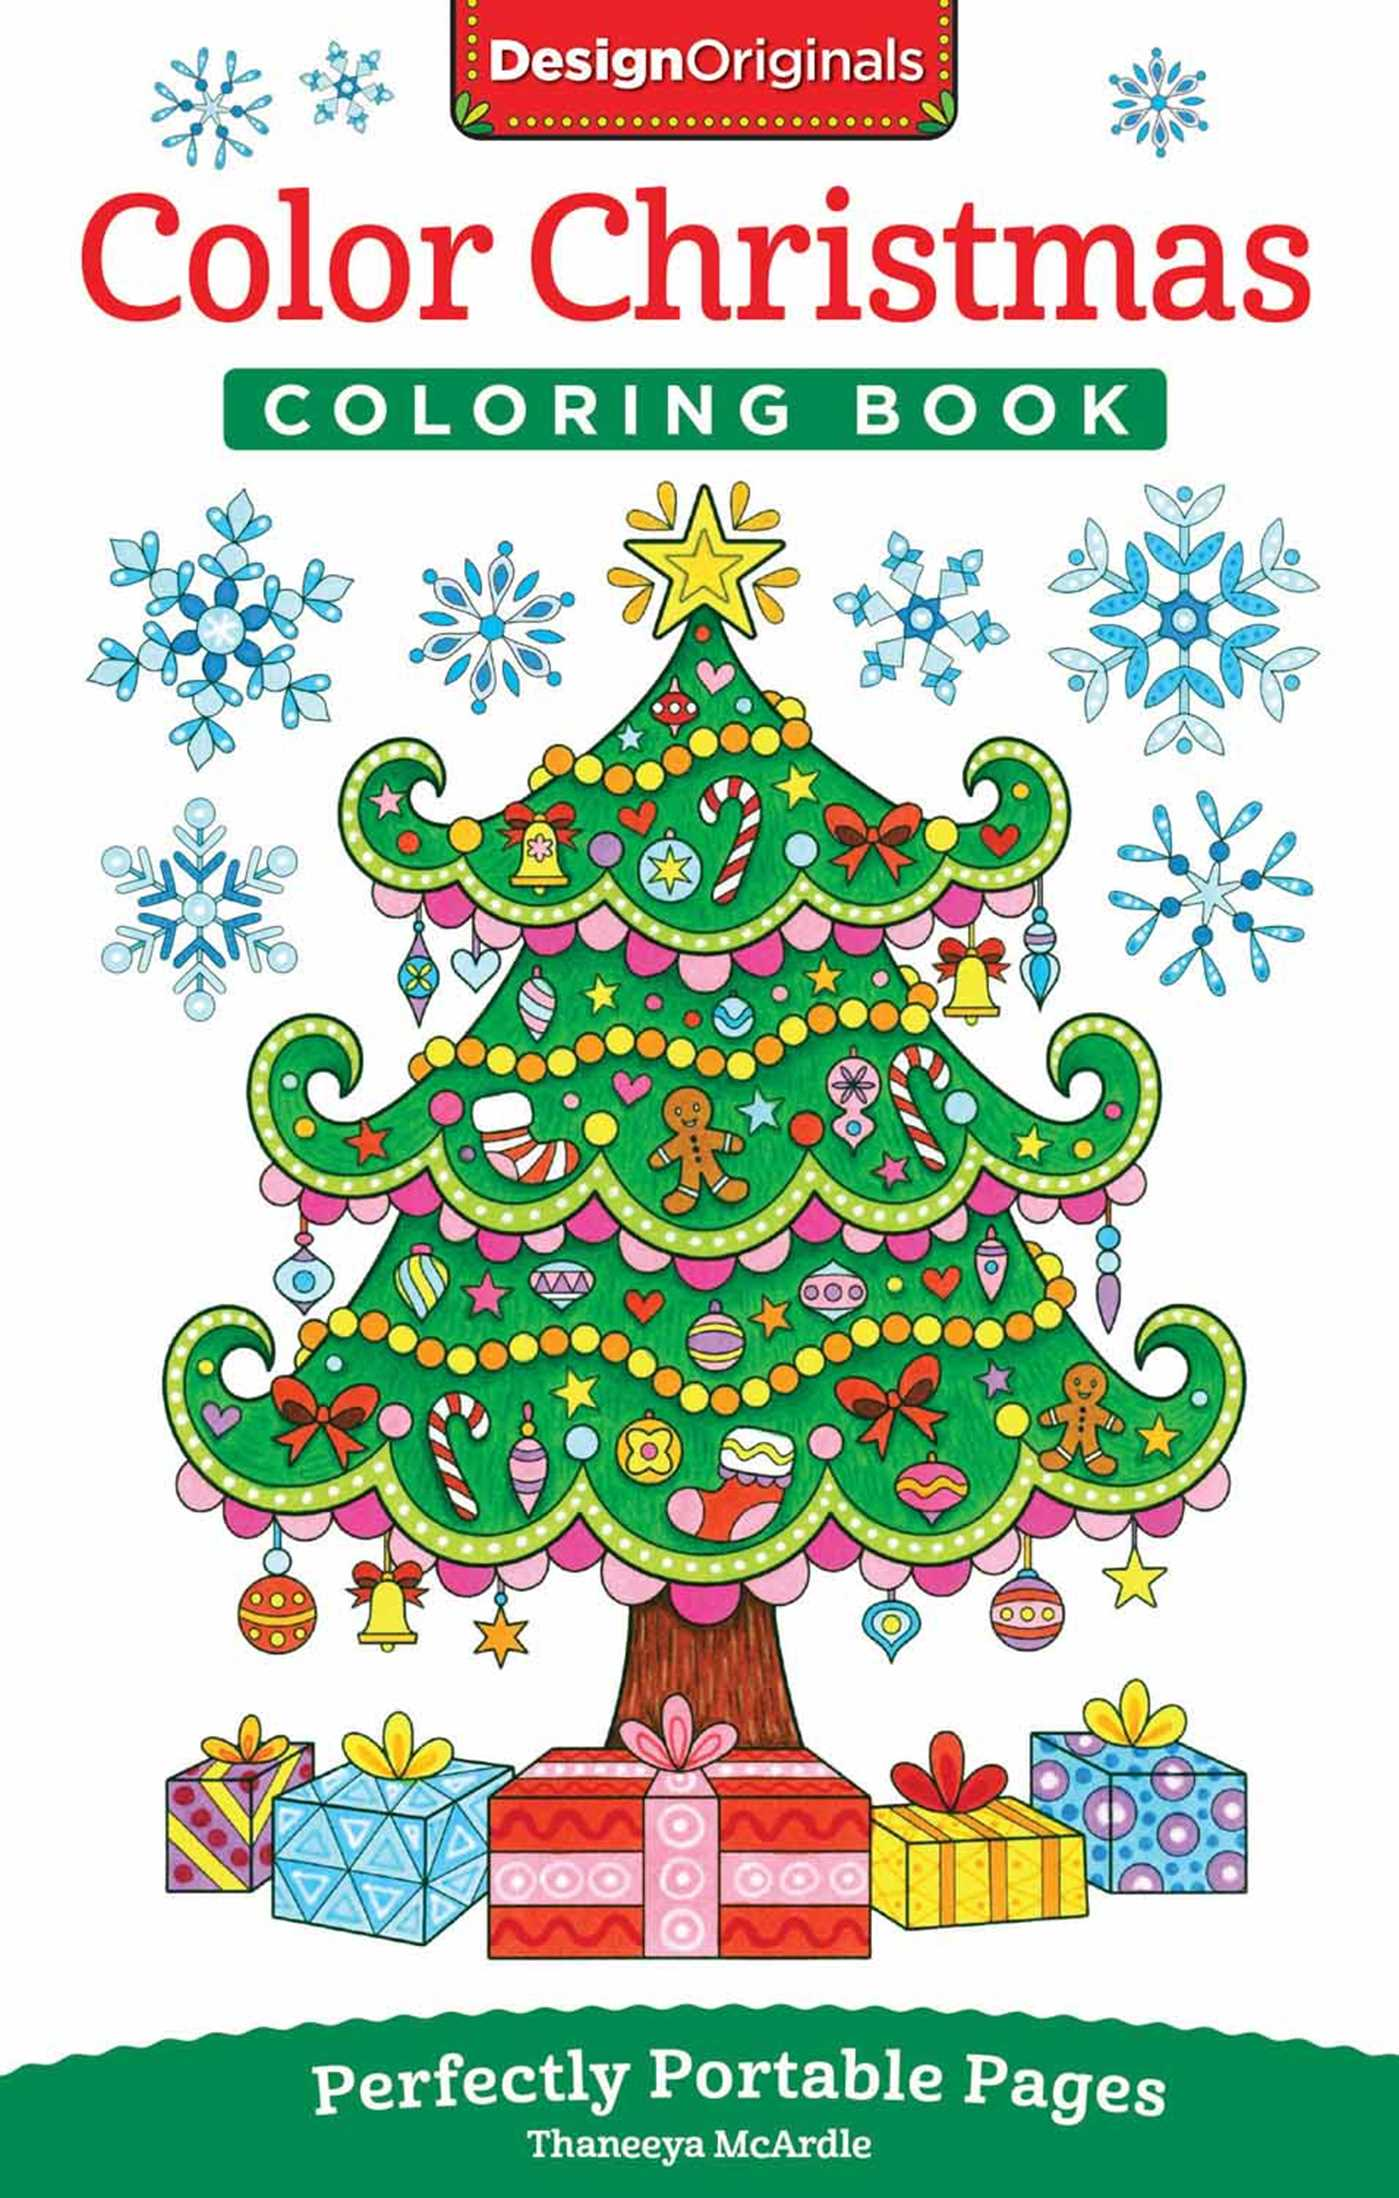 Color Christmas Coloring Book | Book by Thaneeya McArdle | Official ...